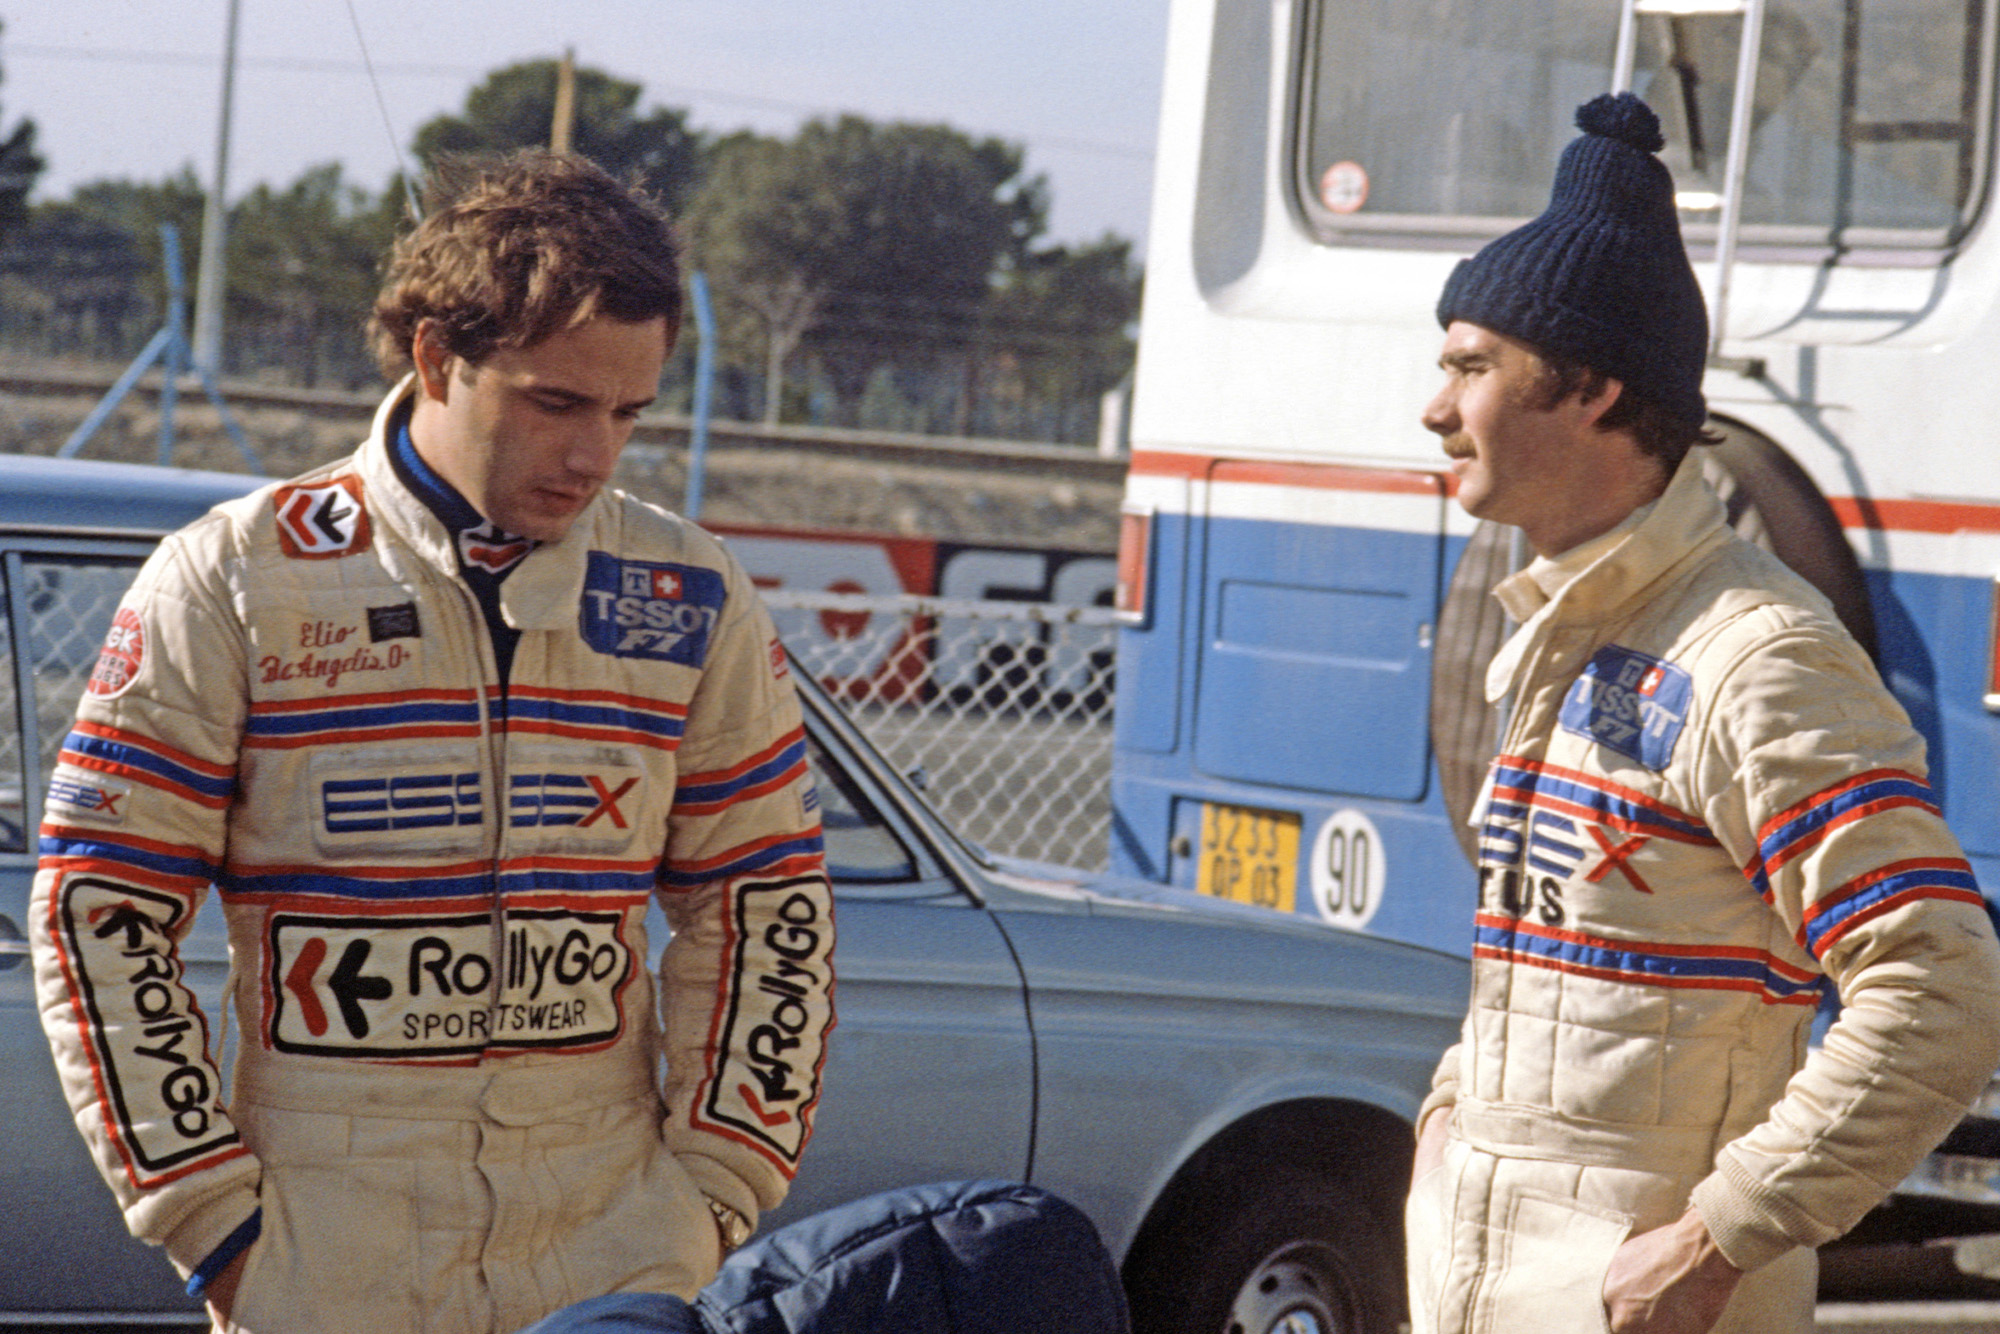 Elio de Angelis with Nigel Mansell during testing at Paul Ricard in 1981